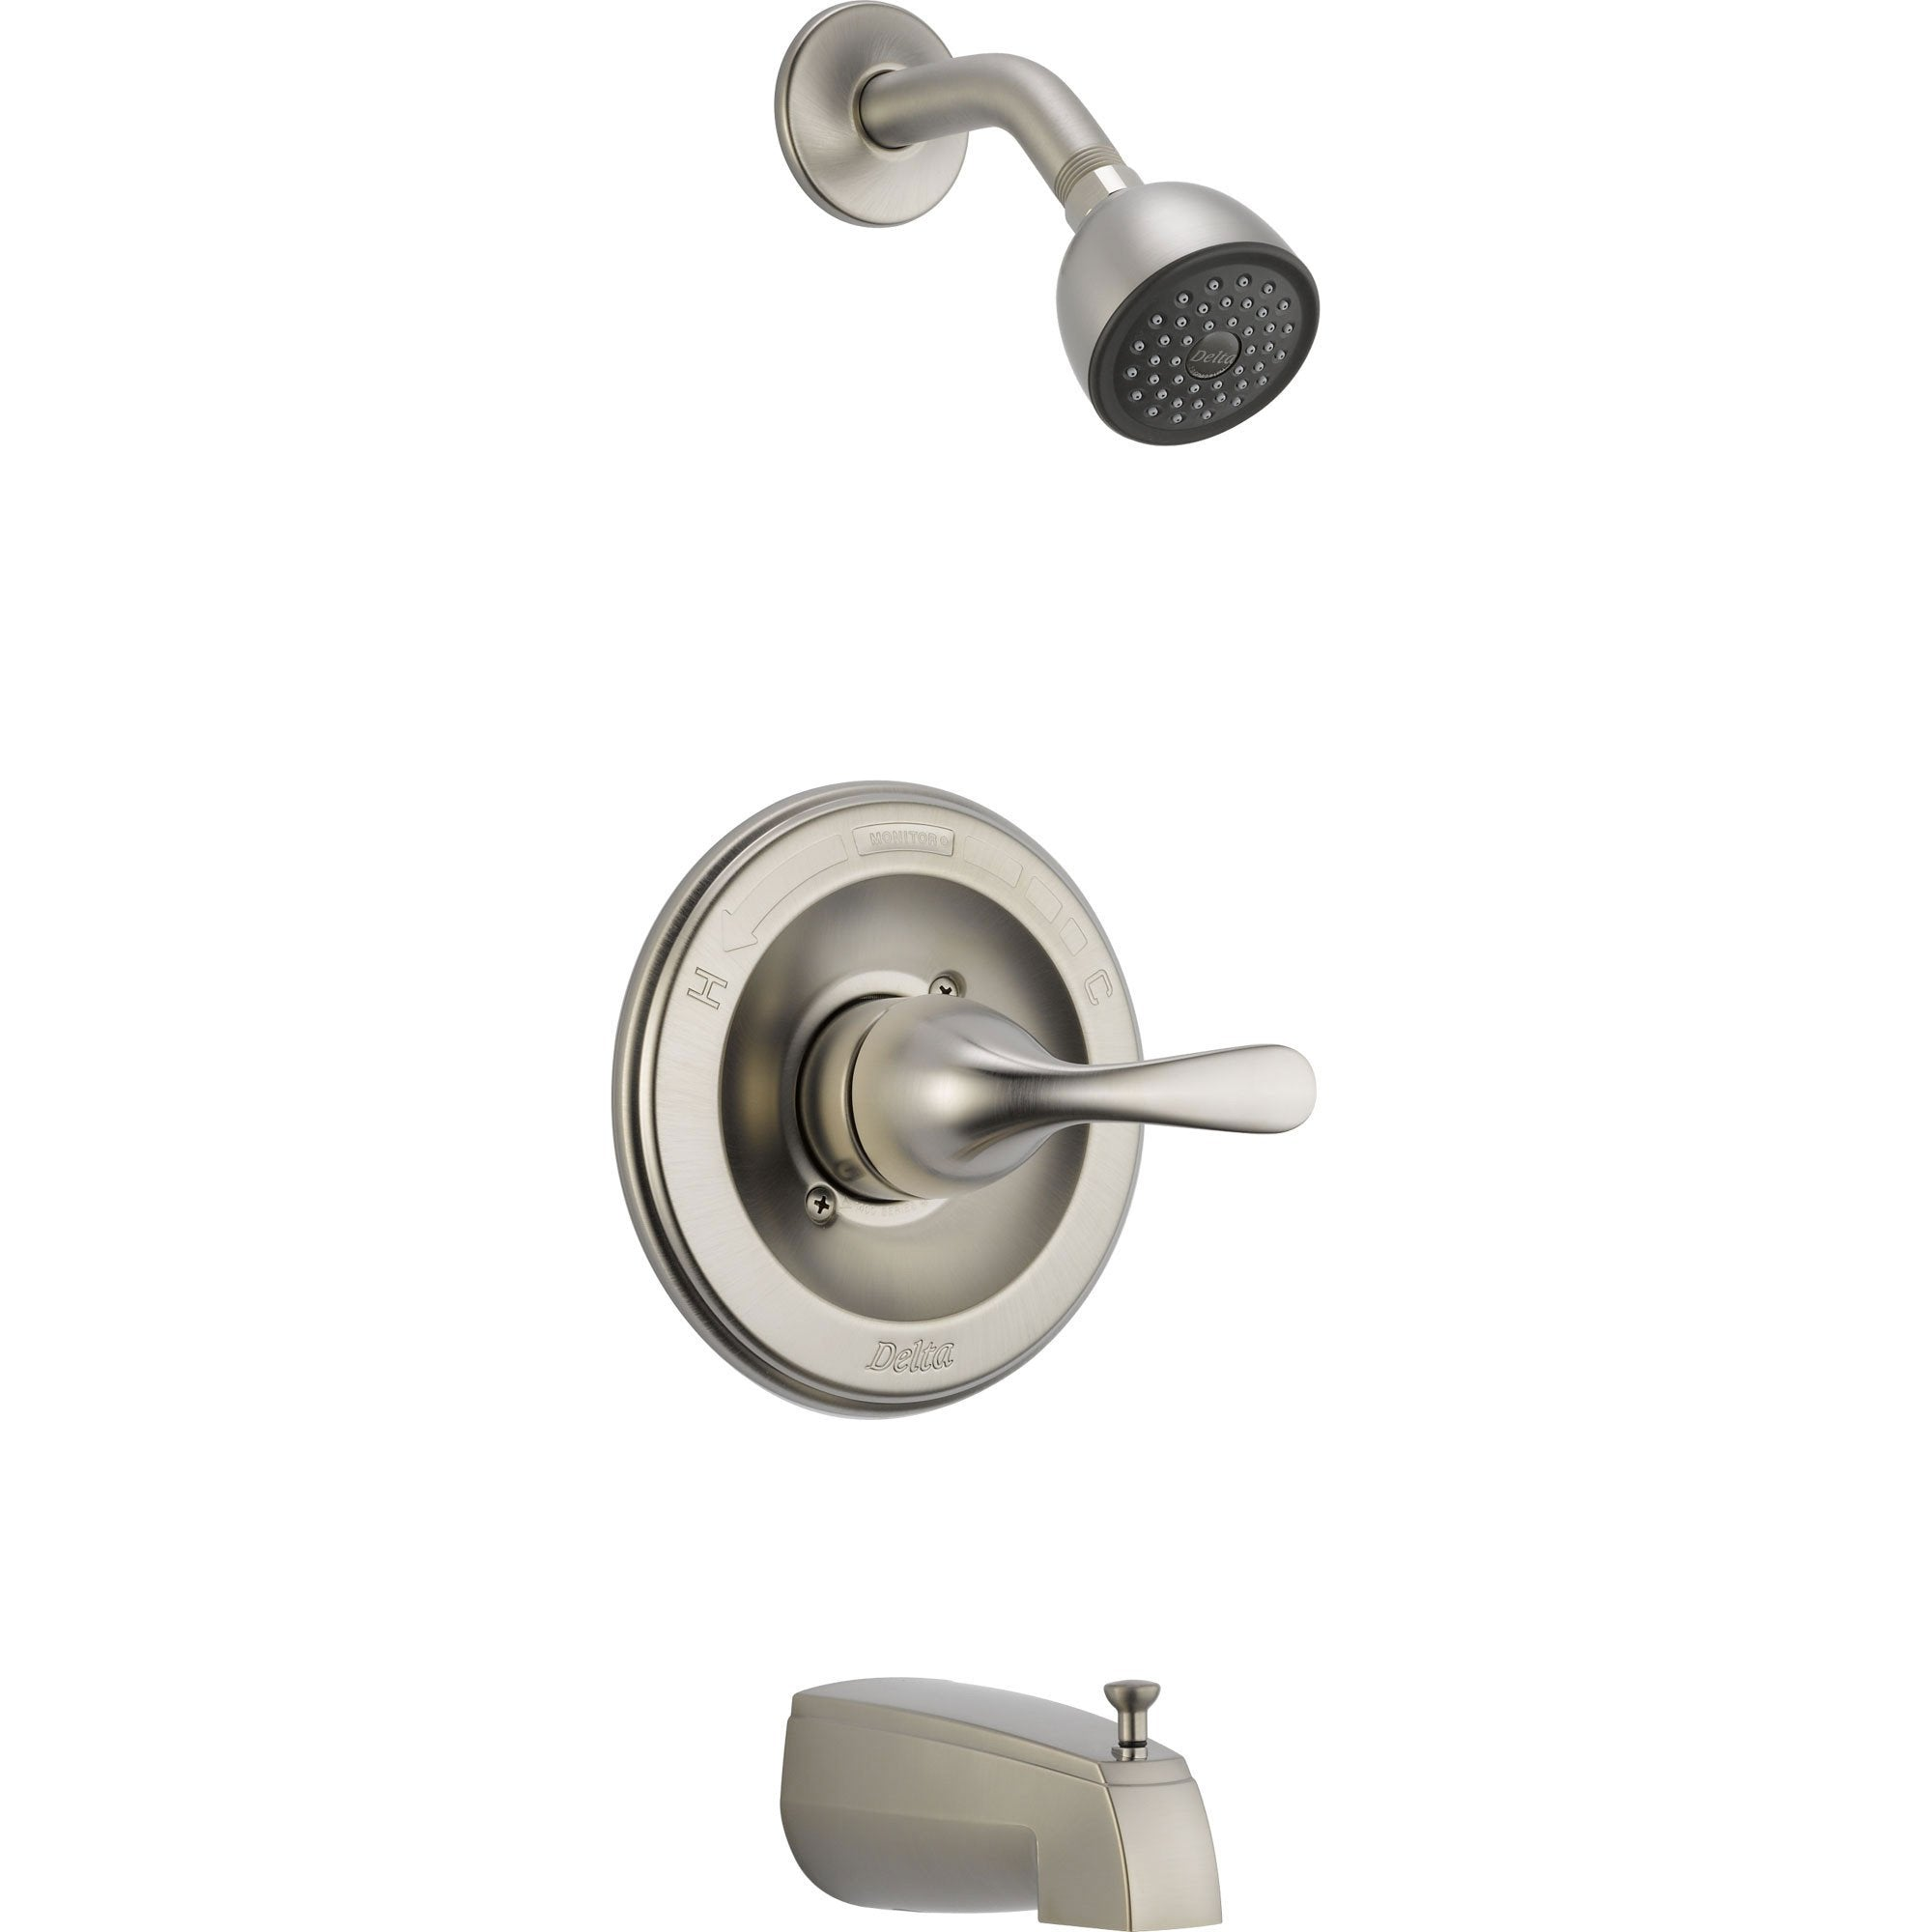 Delta Stainless Steel Finish Tub and Shower Combination Faucet Trim 542548